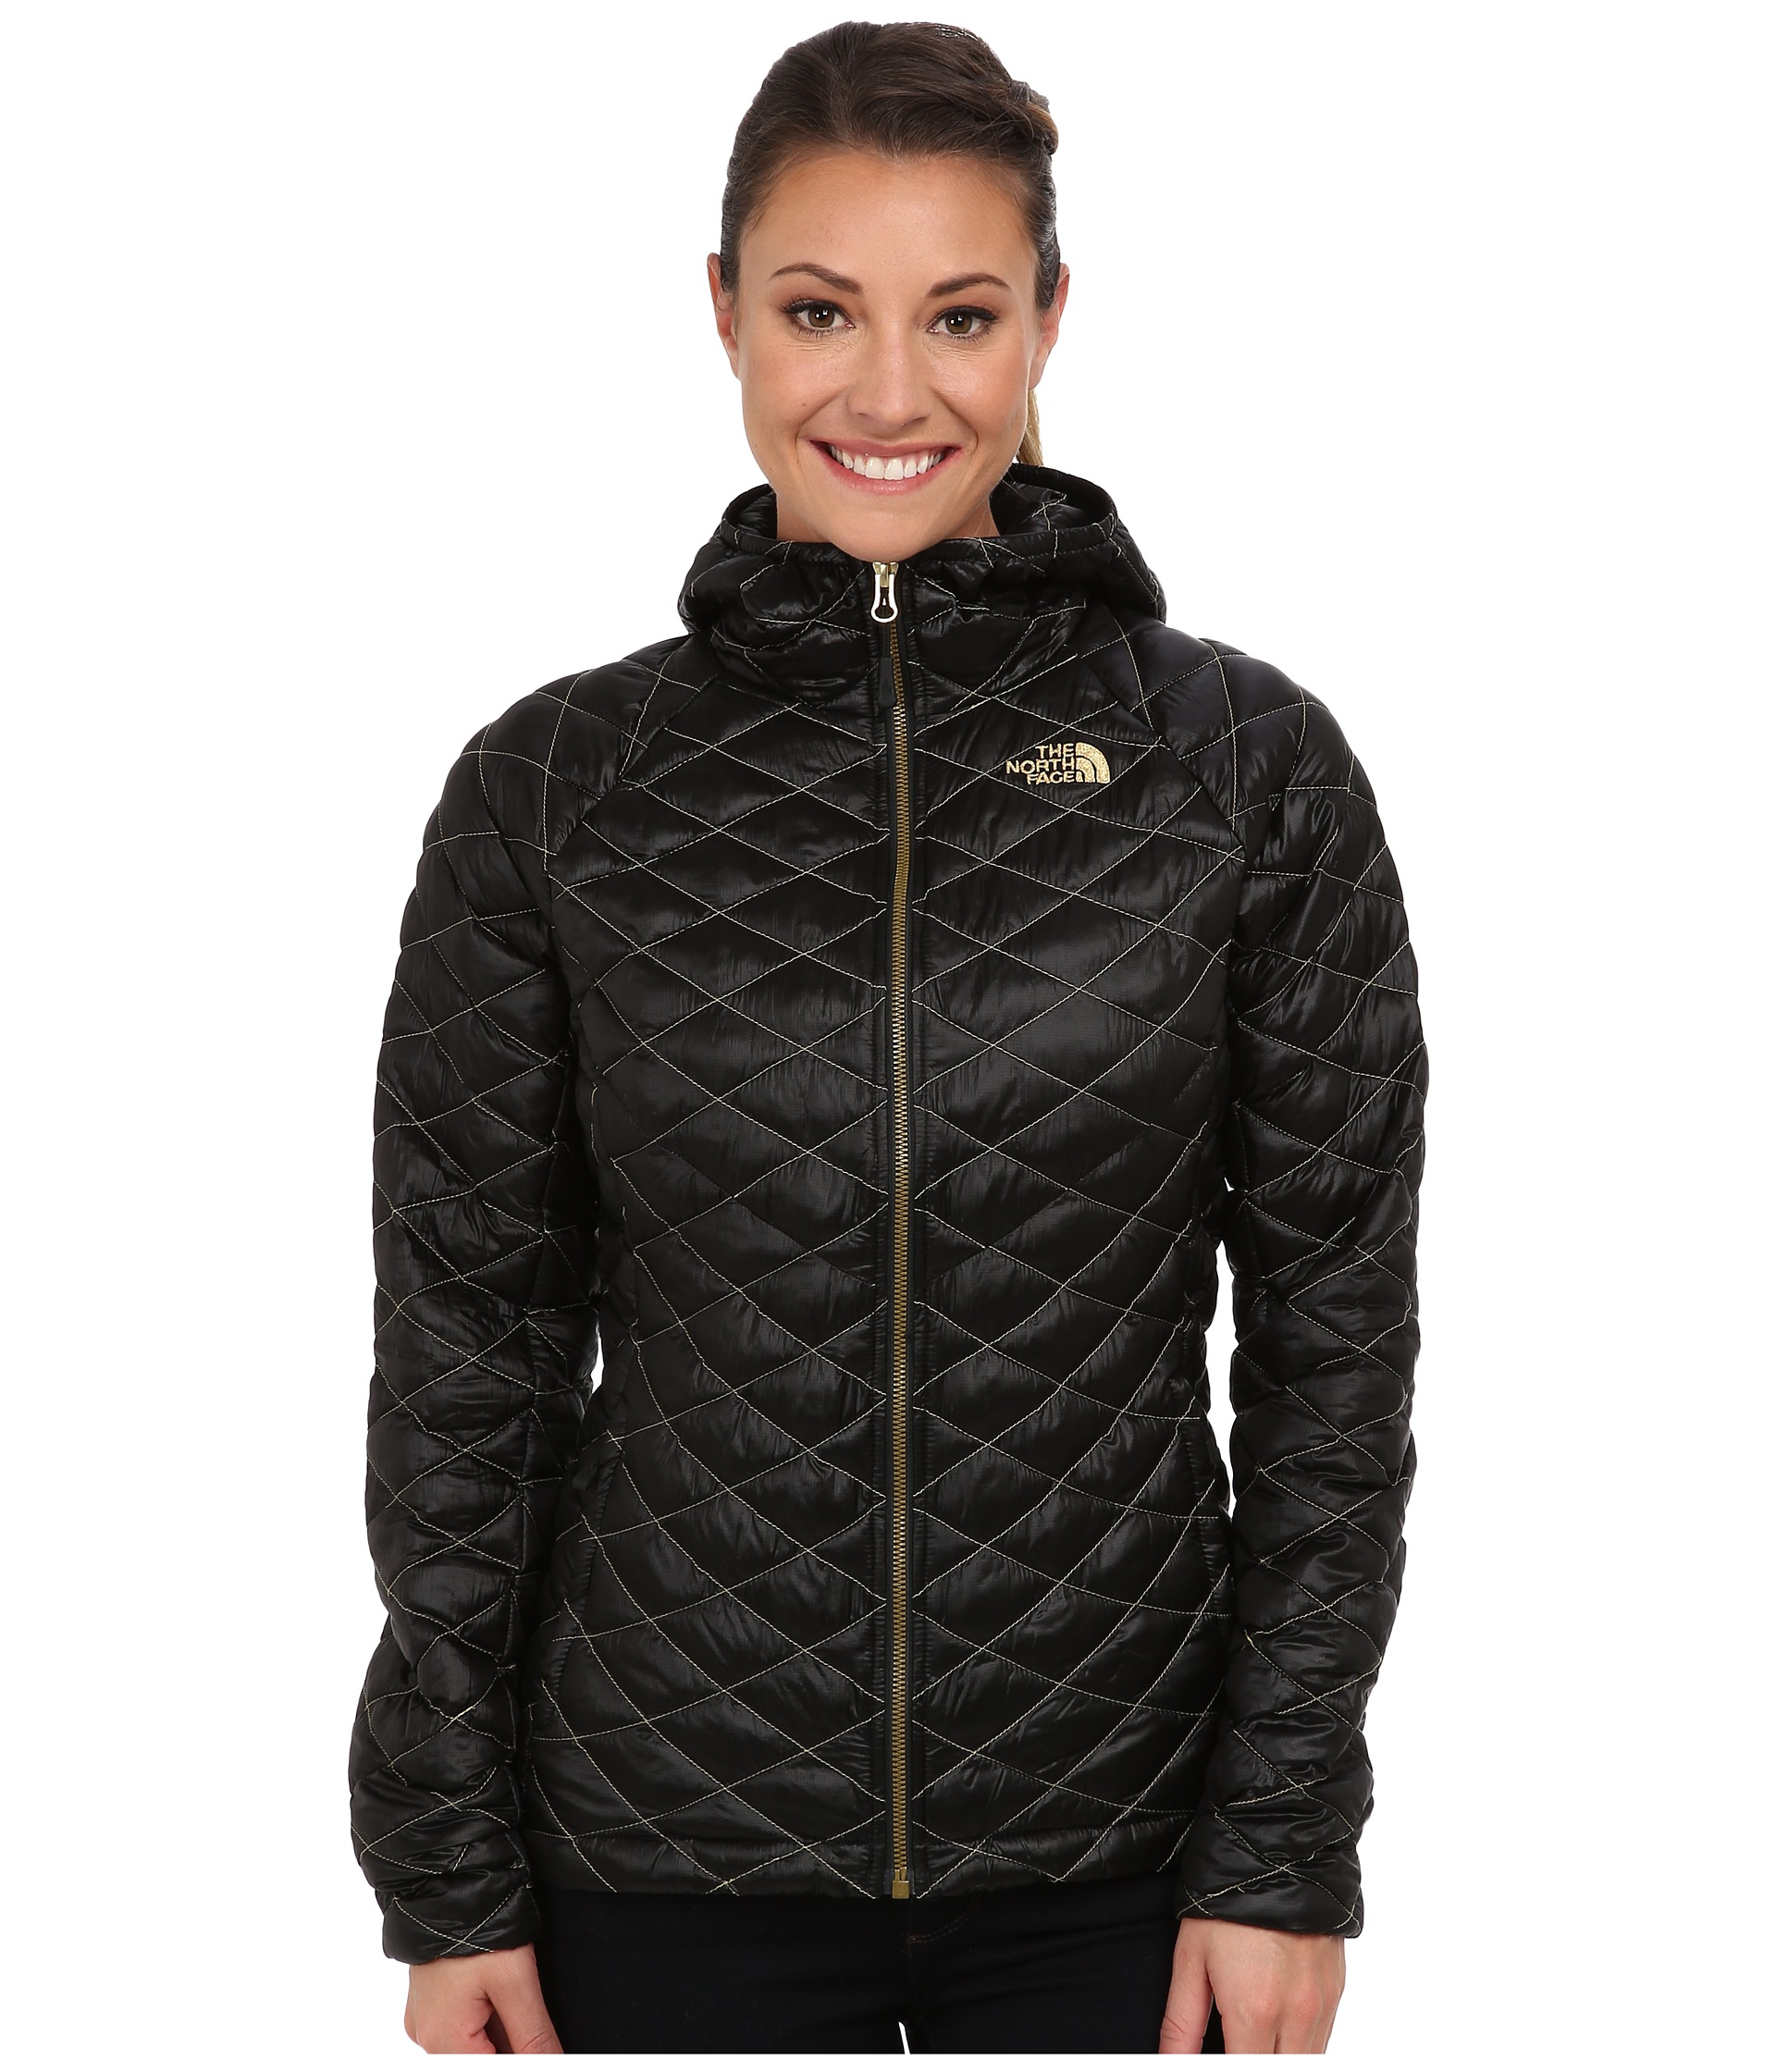 cc4e99bd8 north face jacket black and gold